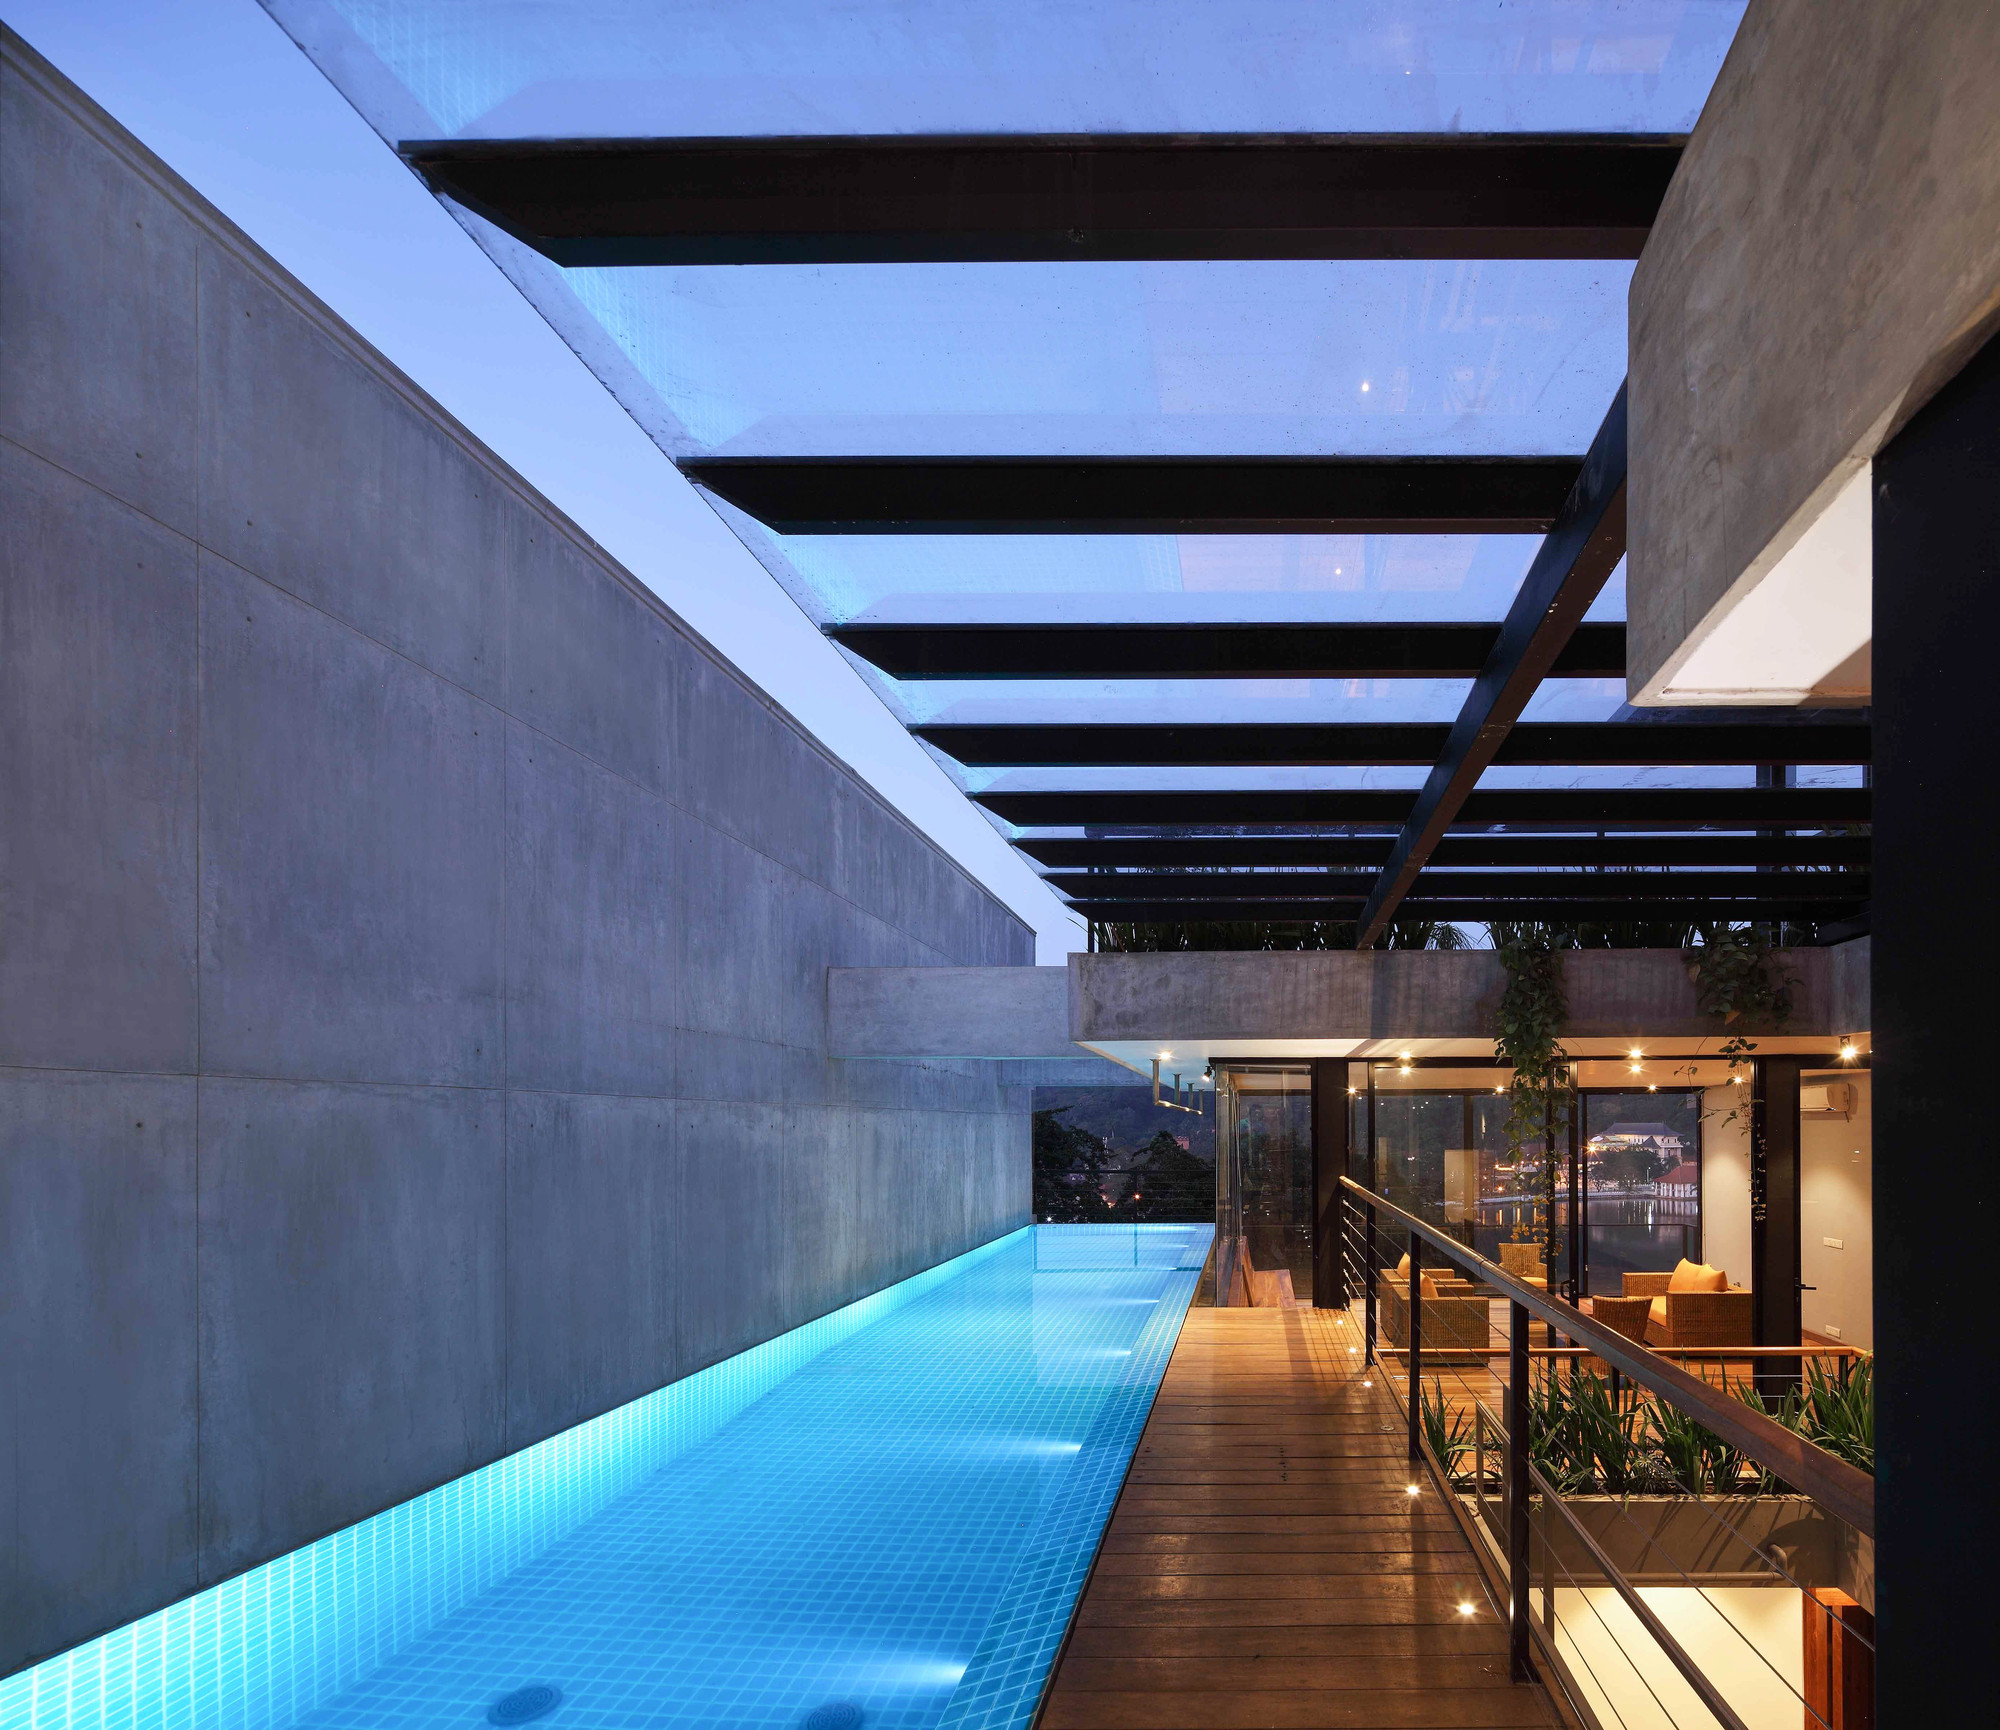 Nestled Hideaway Villa Boutique Hotel Ipa Architects